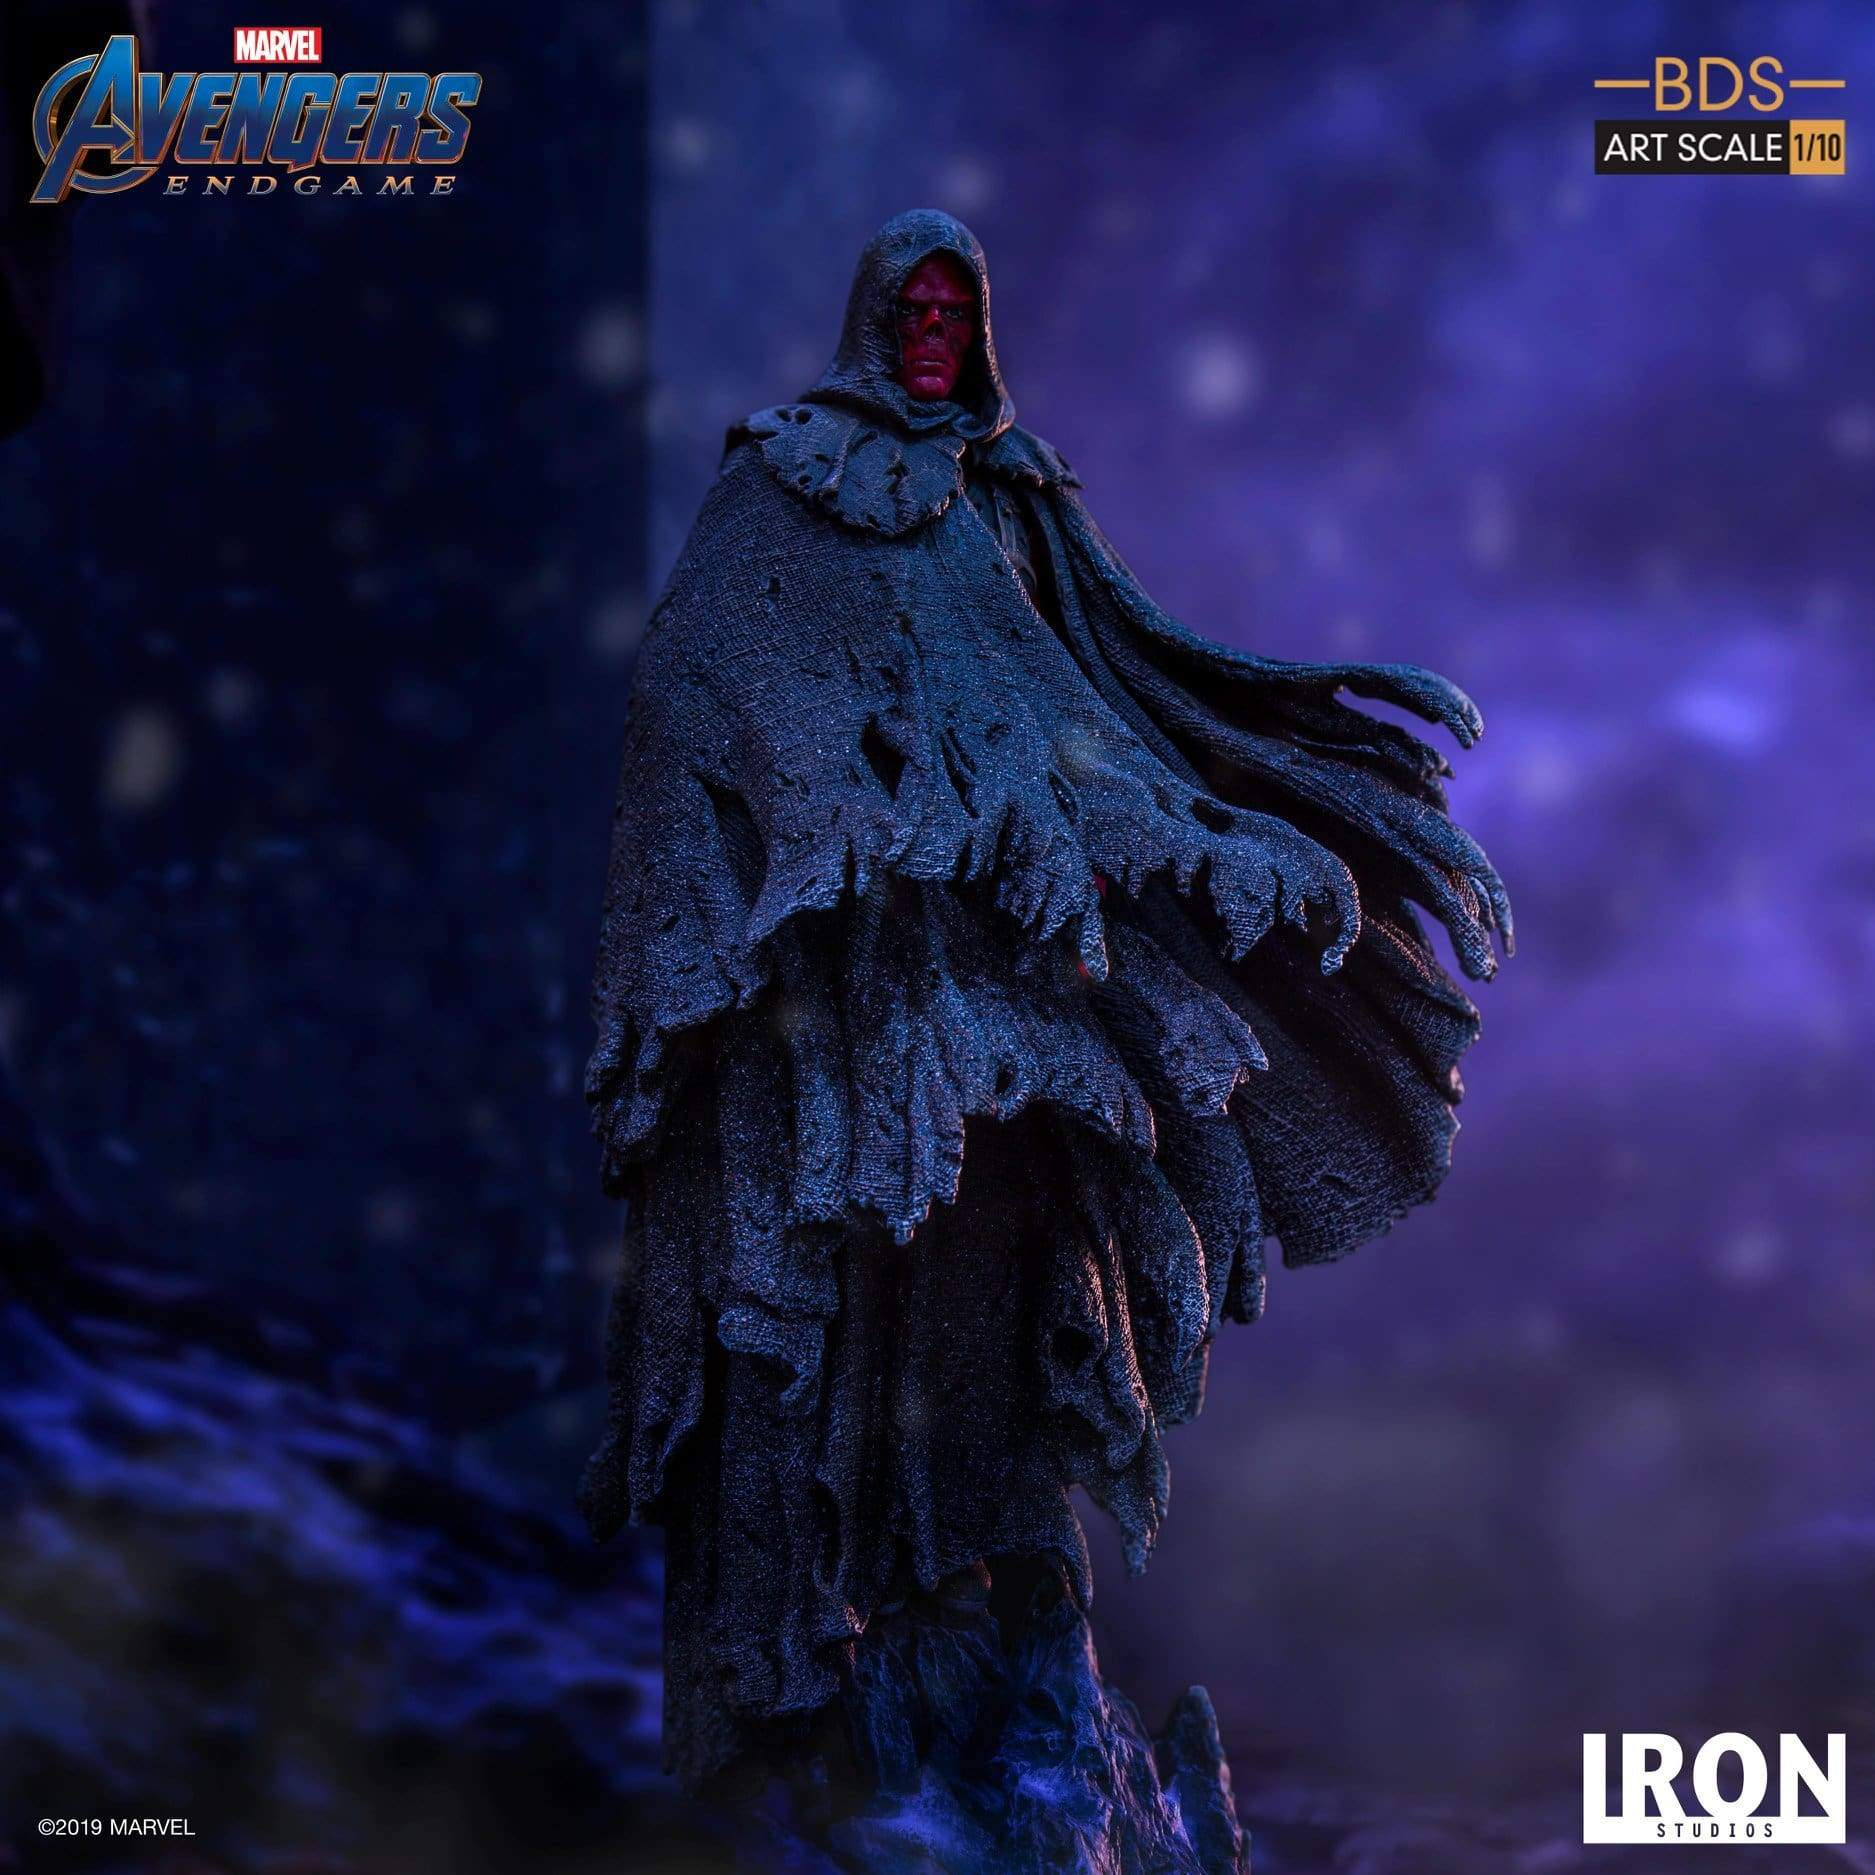 Avengers 4: Endgame – Red Skull 1/10th Scale Statue